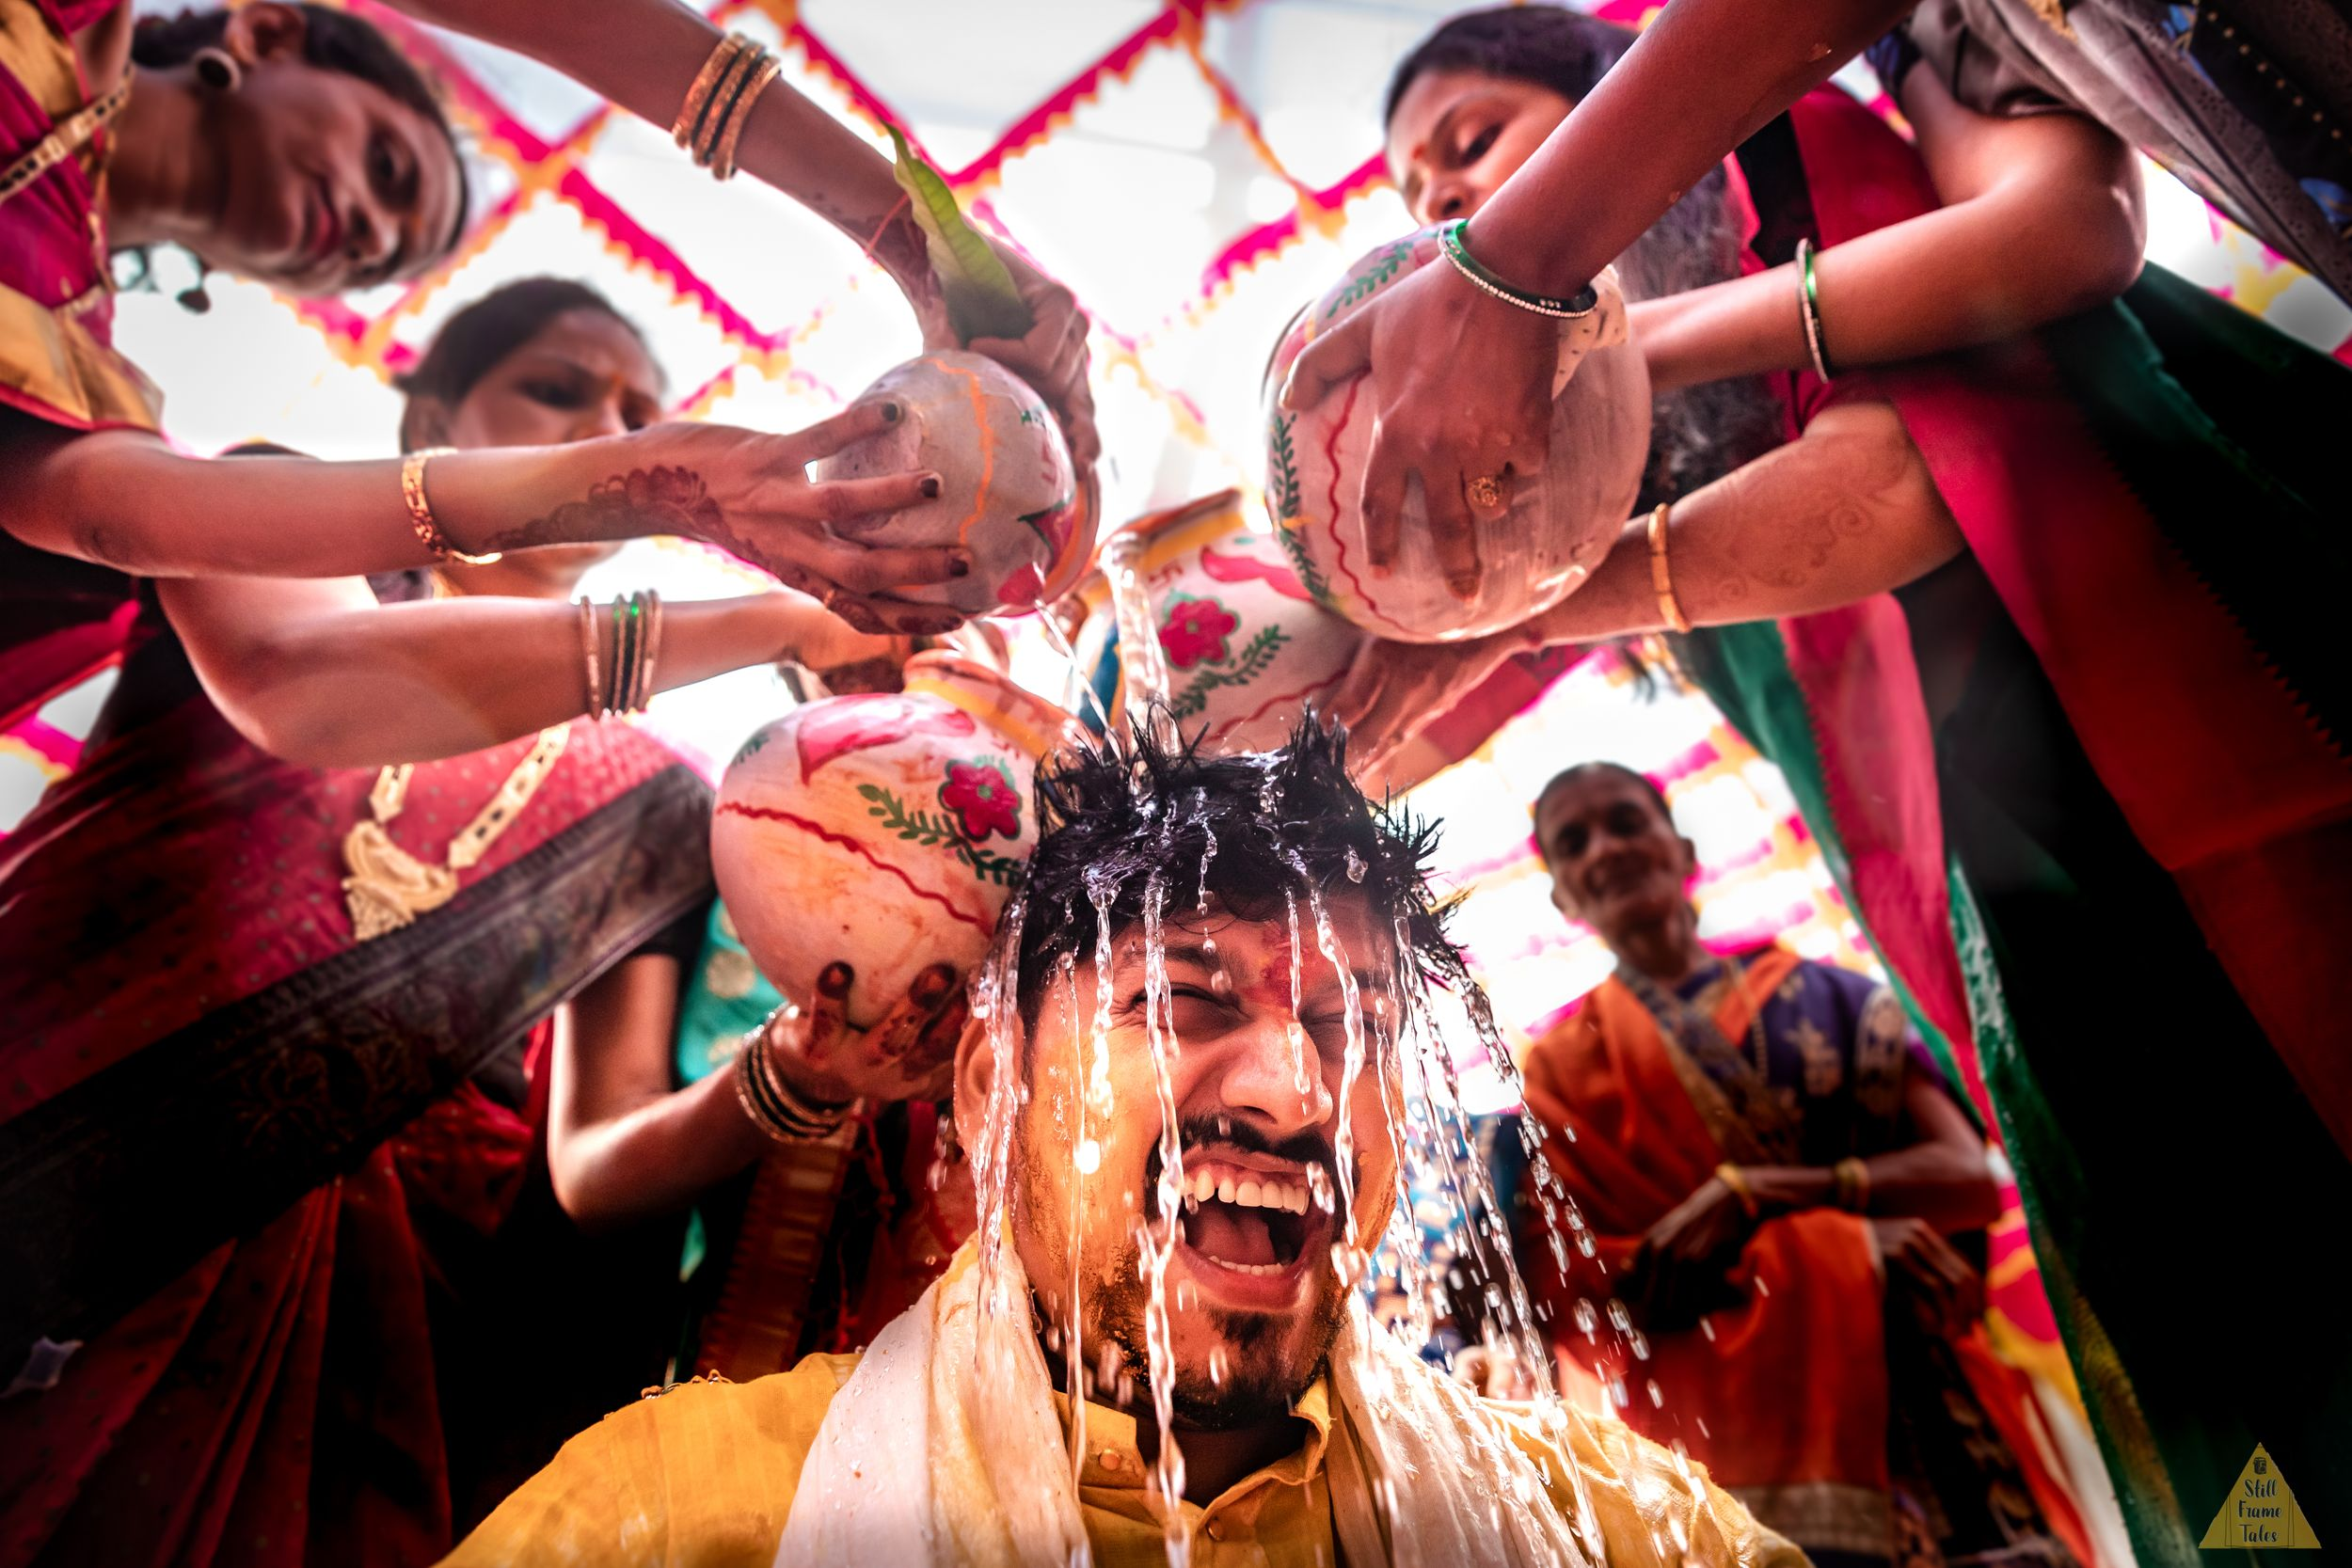 Family showering chilled water on groom during haldi rituals